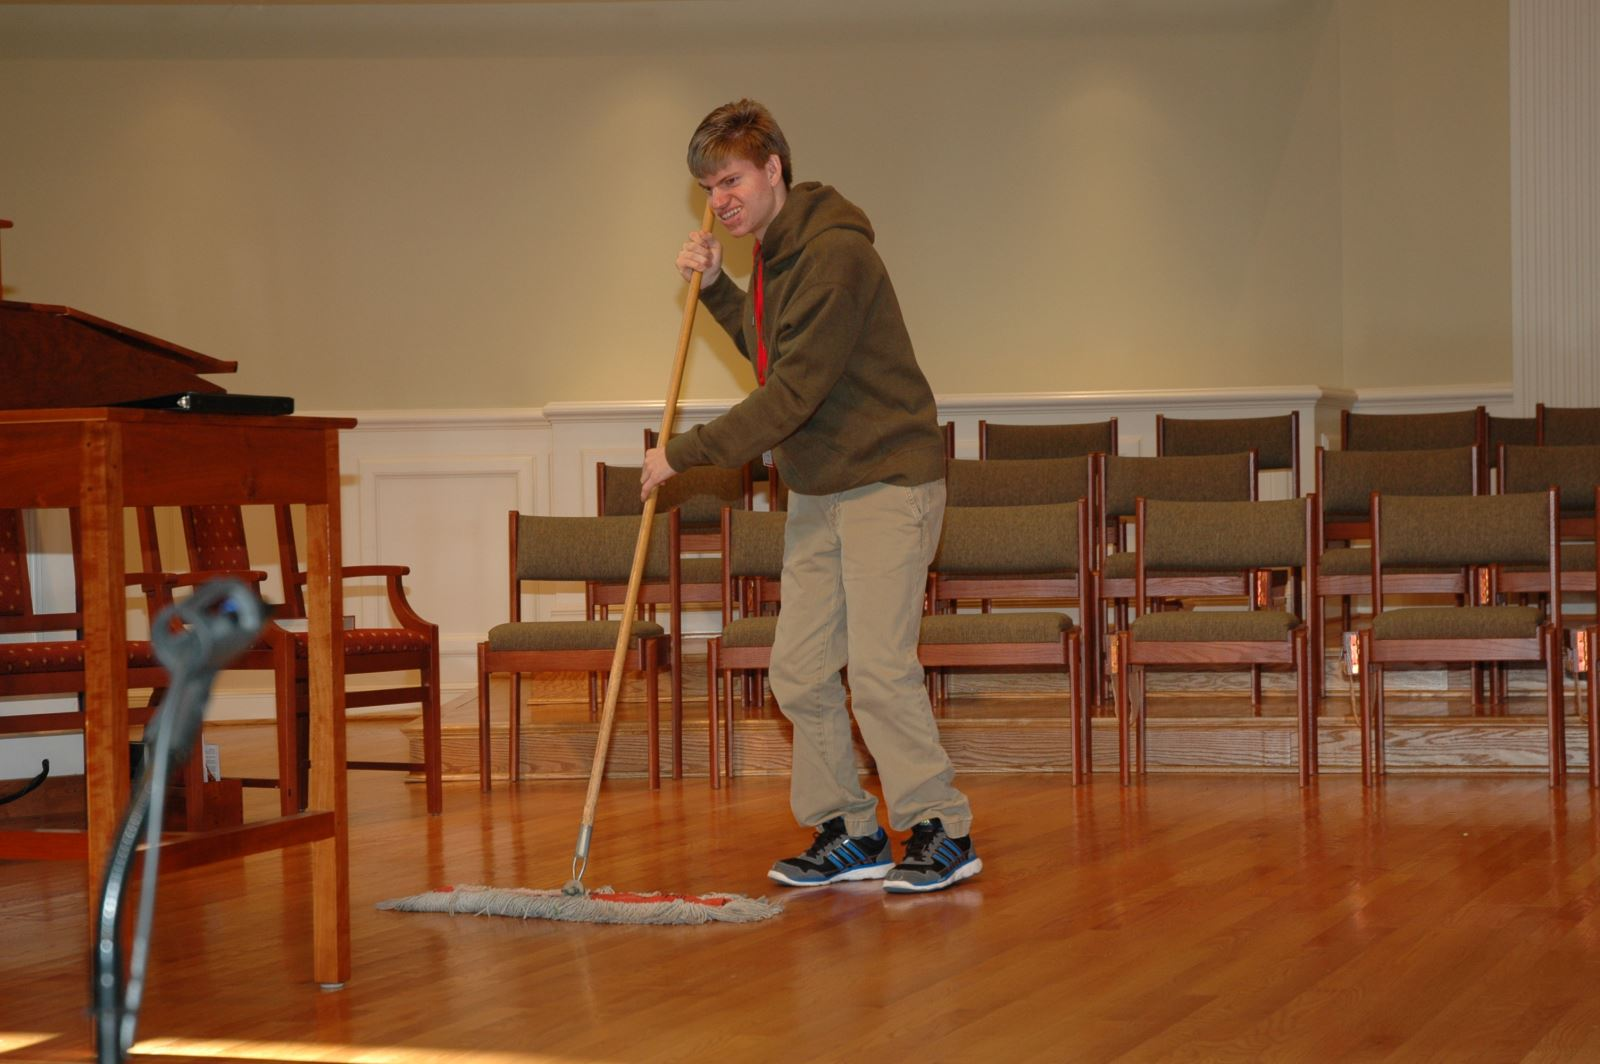 Student mopping floor.